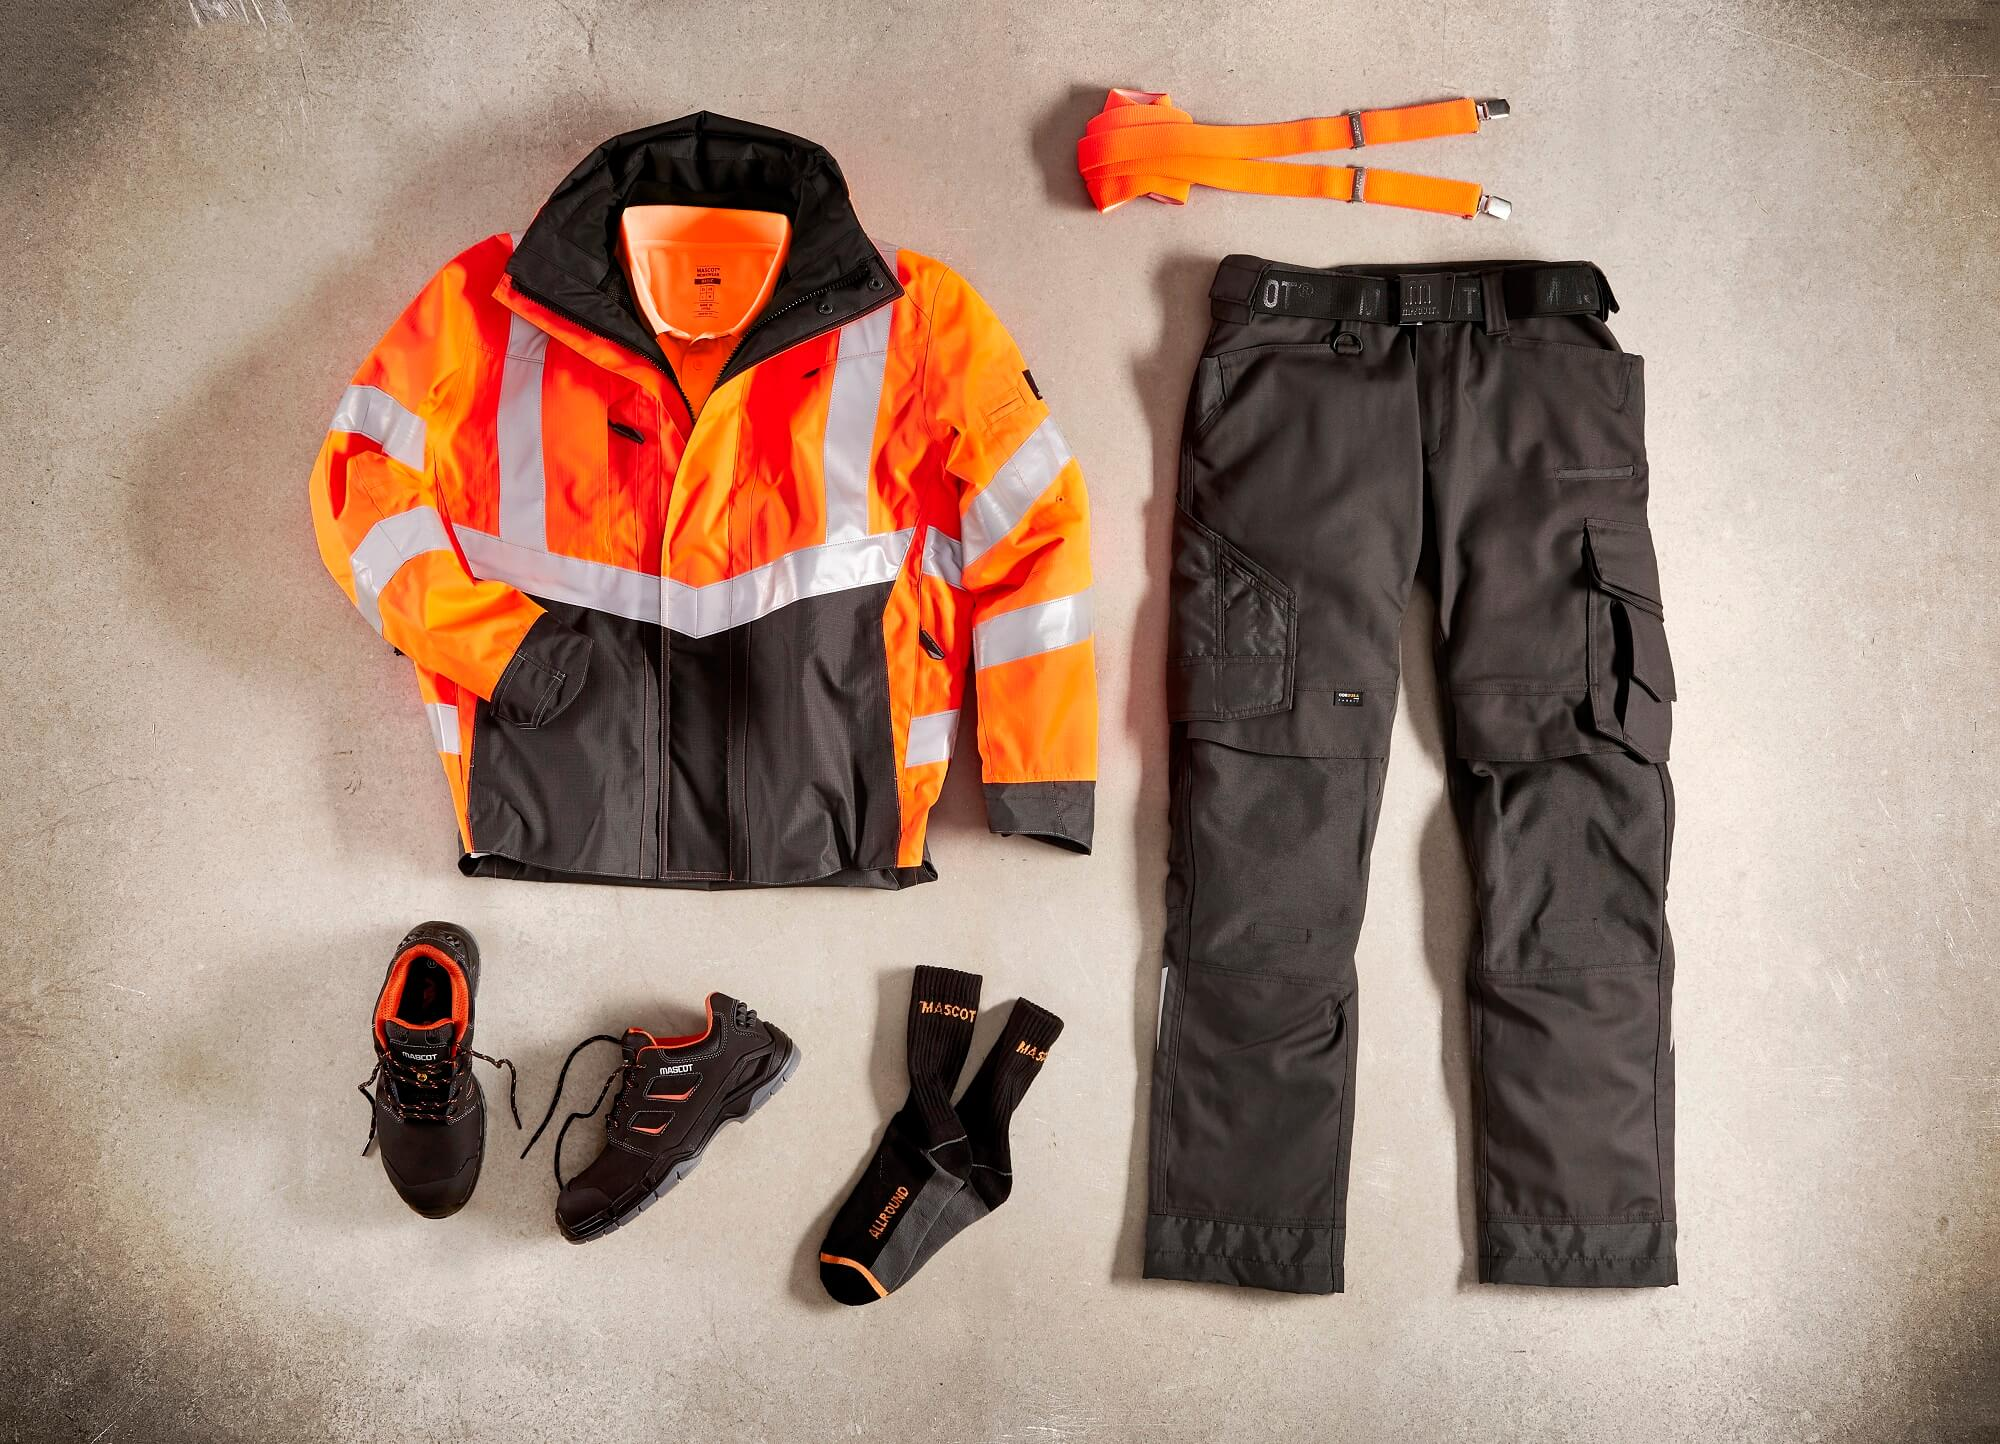 Collage - Hi-vis Jacket, Trousers, Socks & Safety Shoe - Fluorescent orange